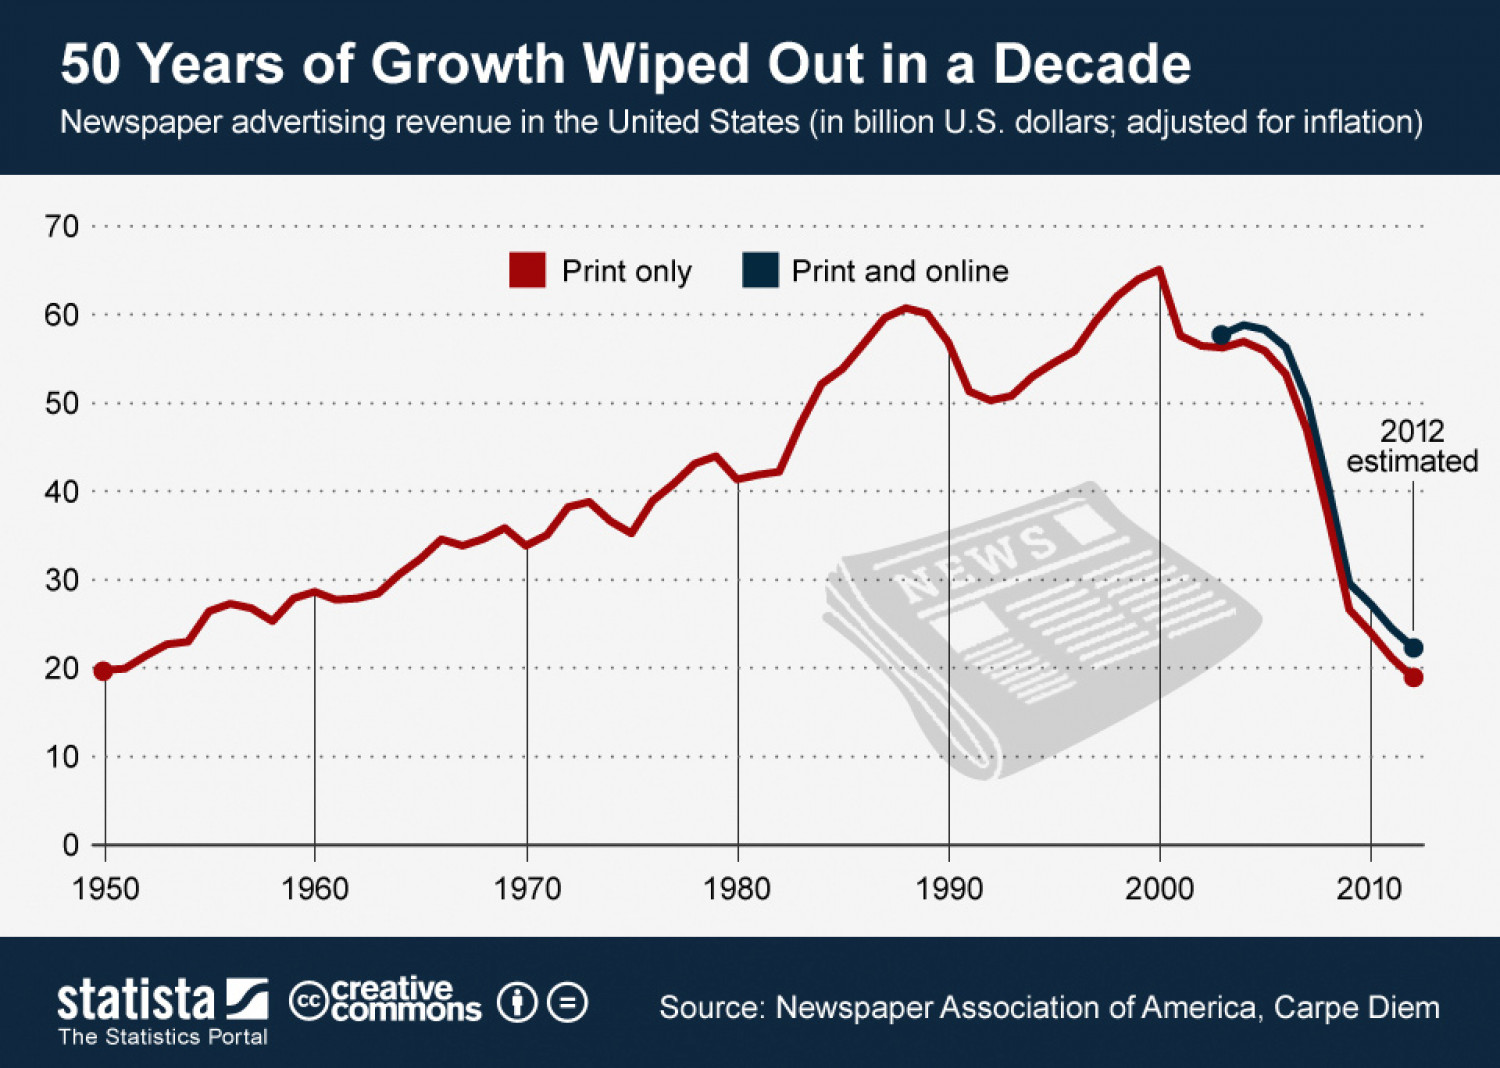 50 Years of Growth Wiped Out in a Decade Infographic